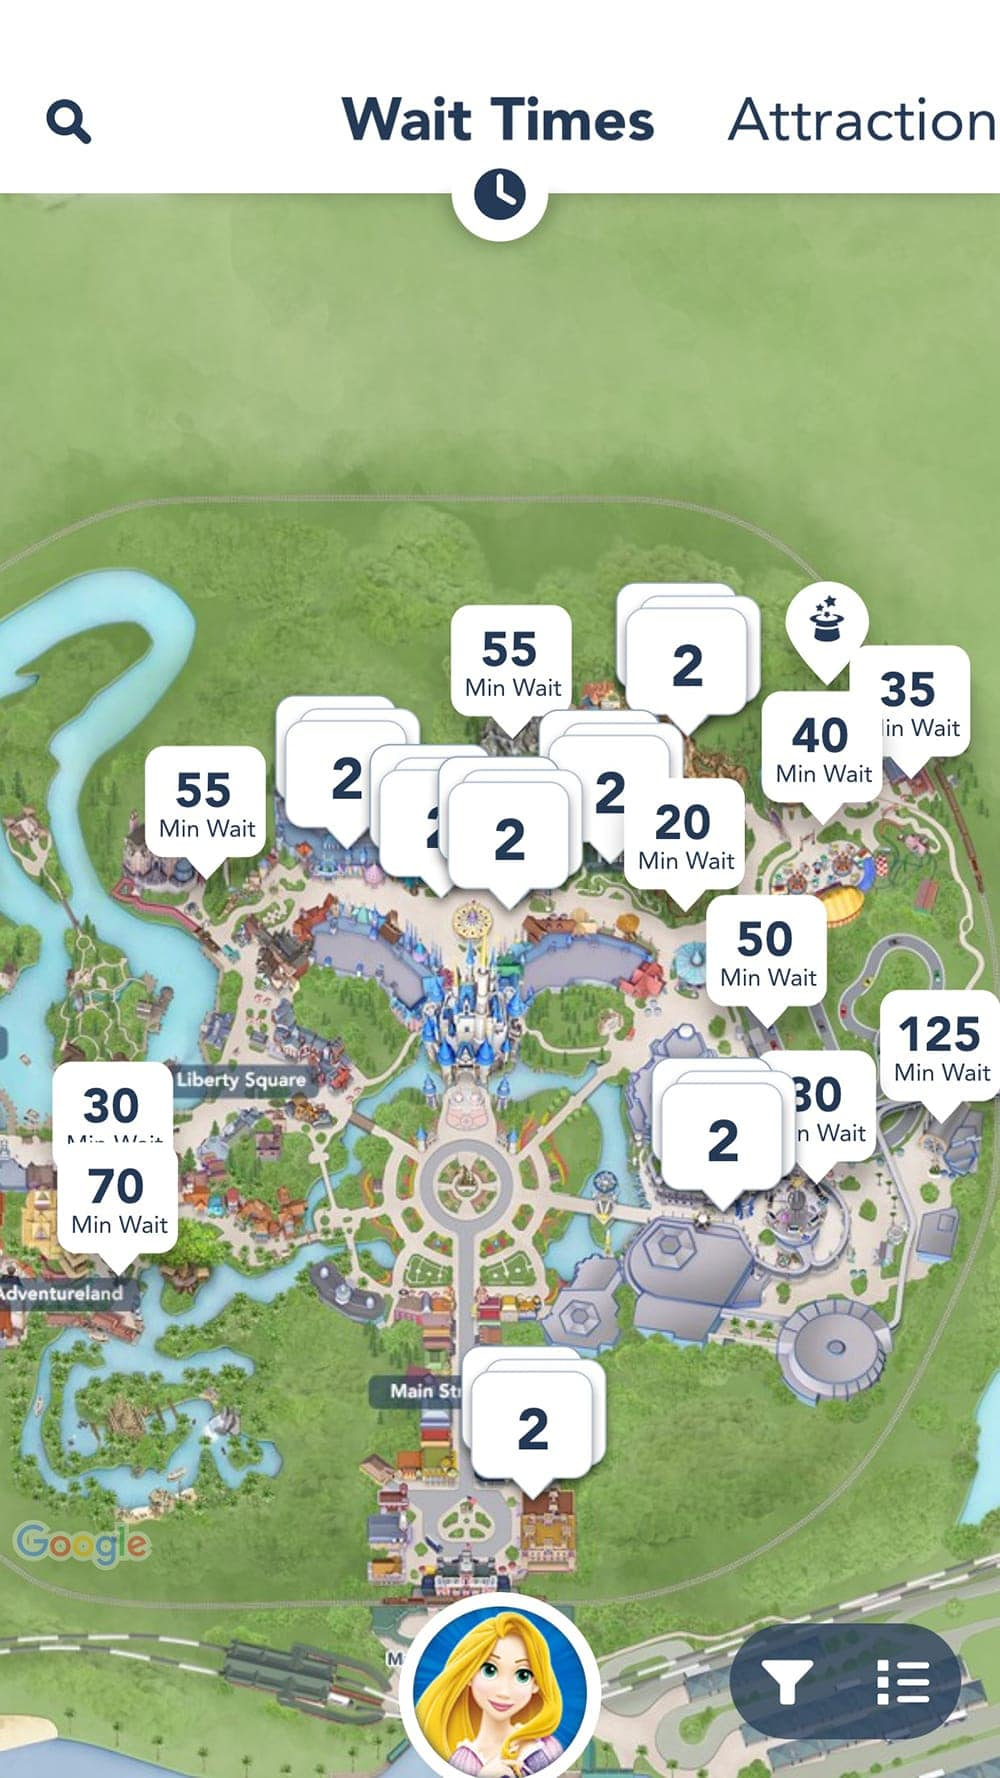 Houston blogger Meg O. on the Go shares the My Disney Experience app